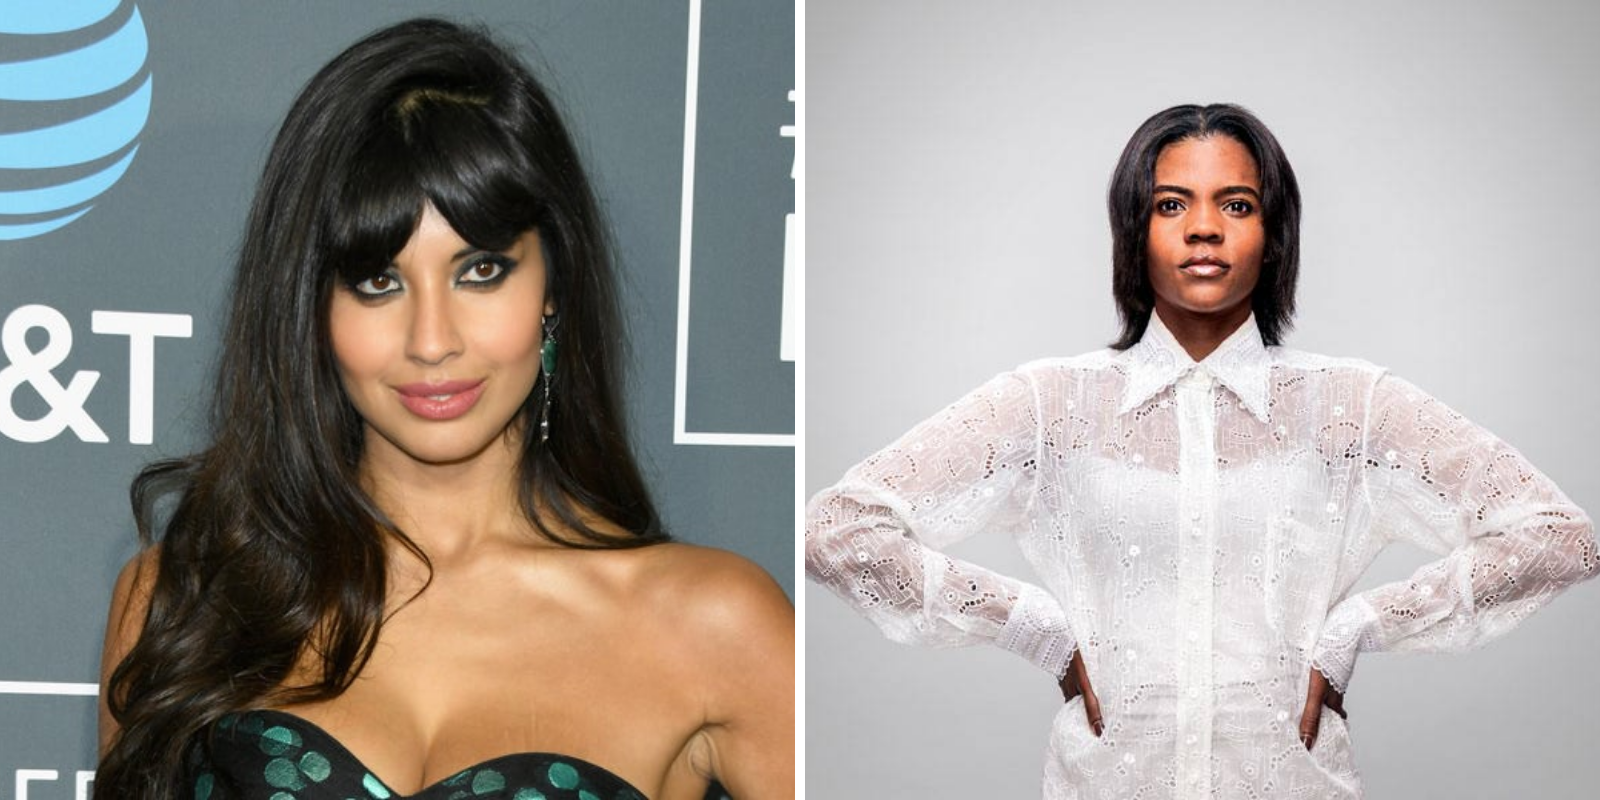 Candace Owens cut from Jameela Jamil's podcast for 'transphobia'